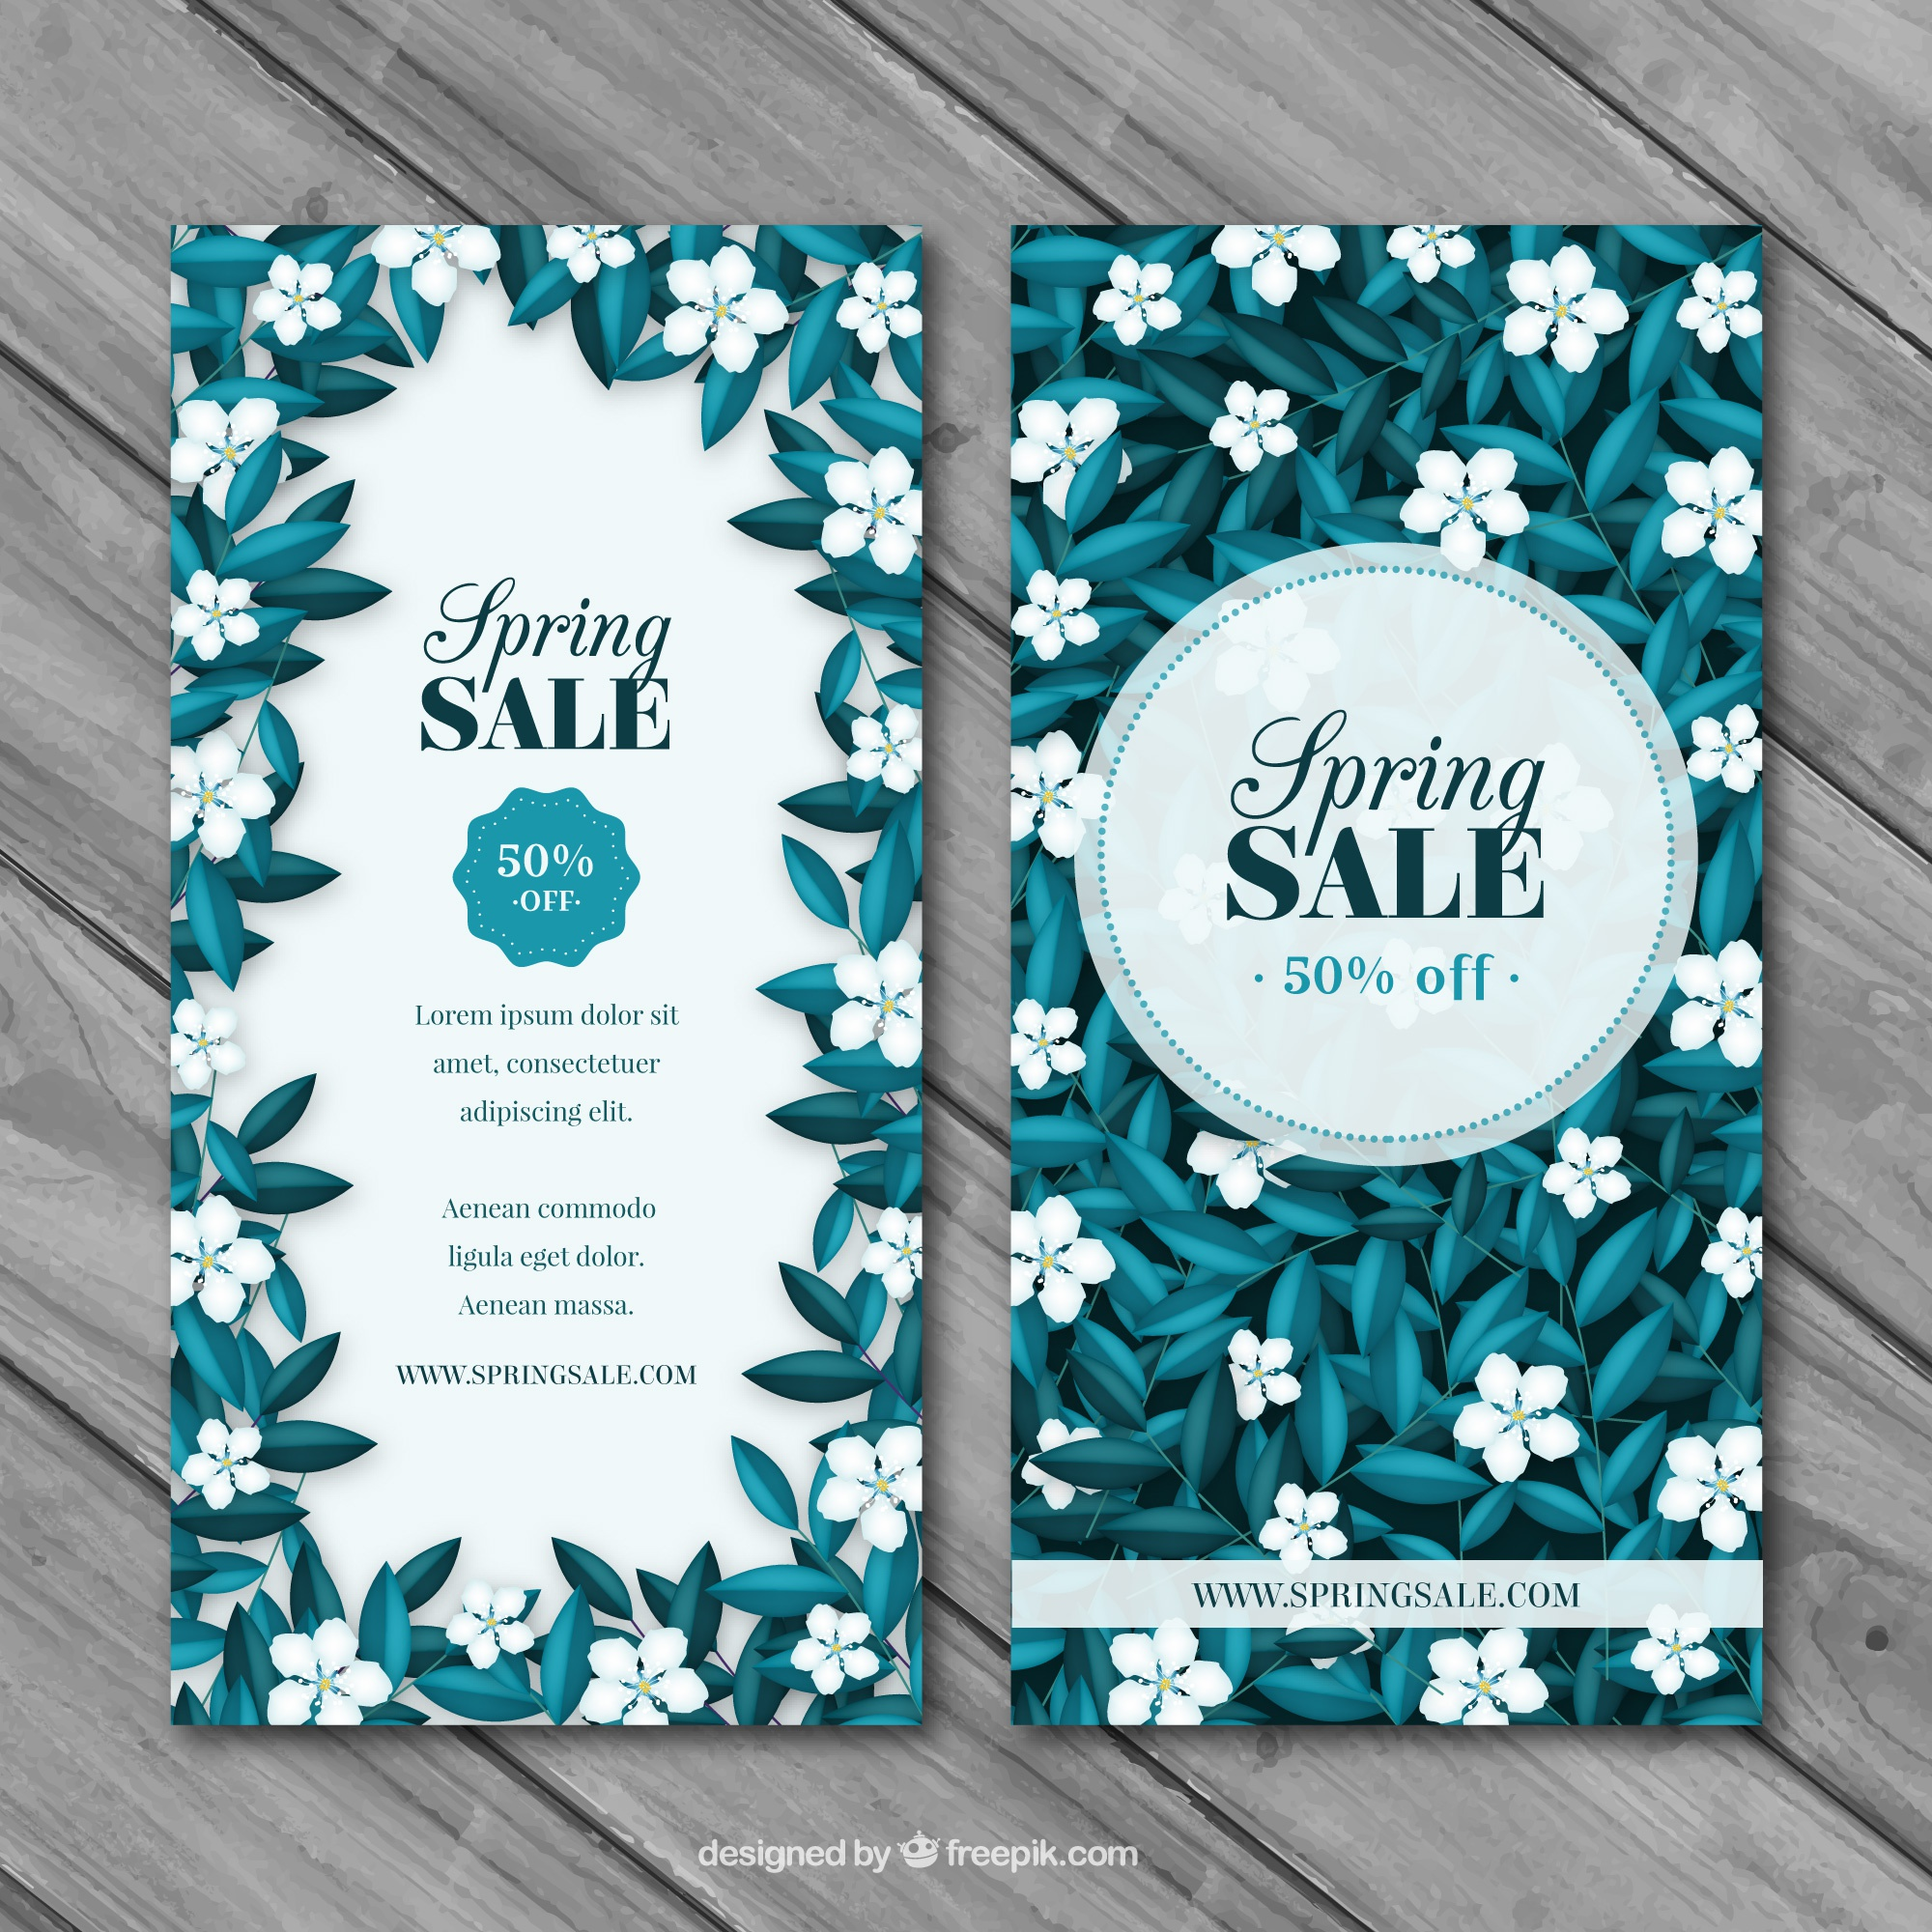 Spring sale banners with plants in blue tones